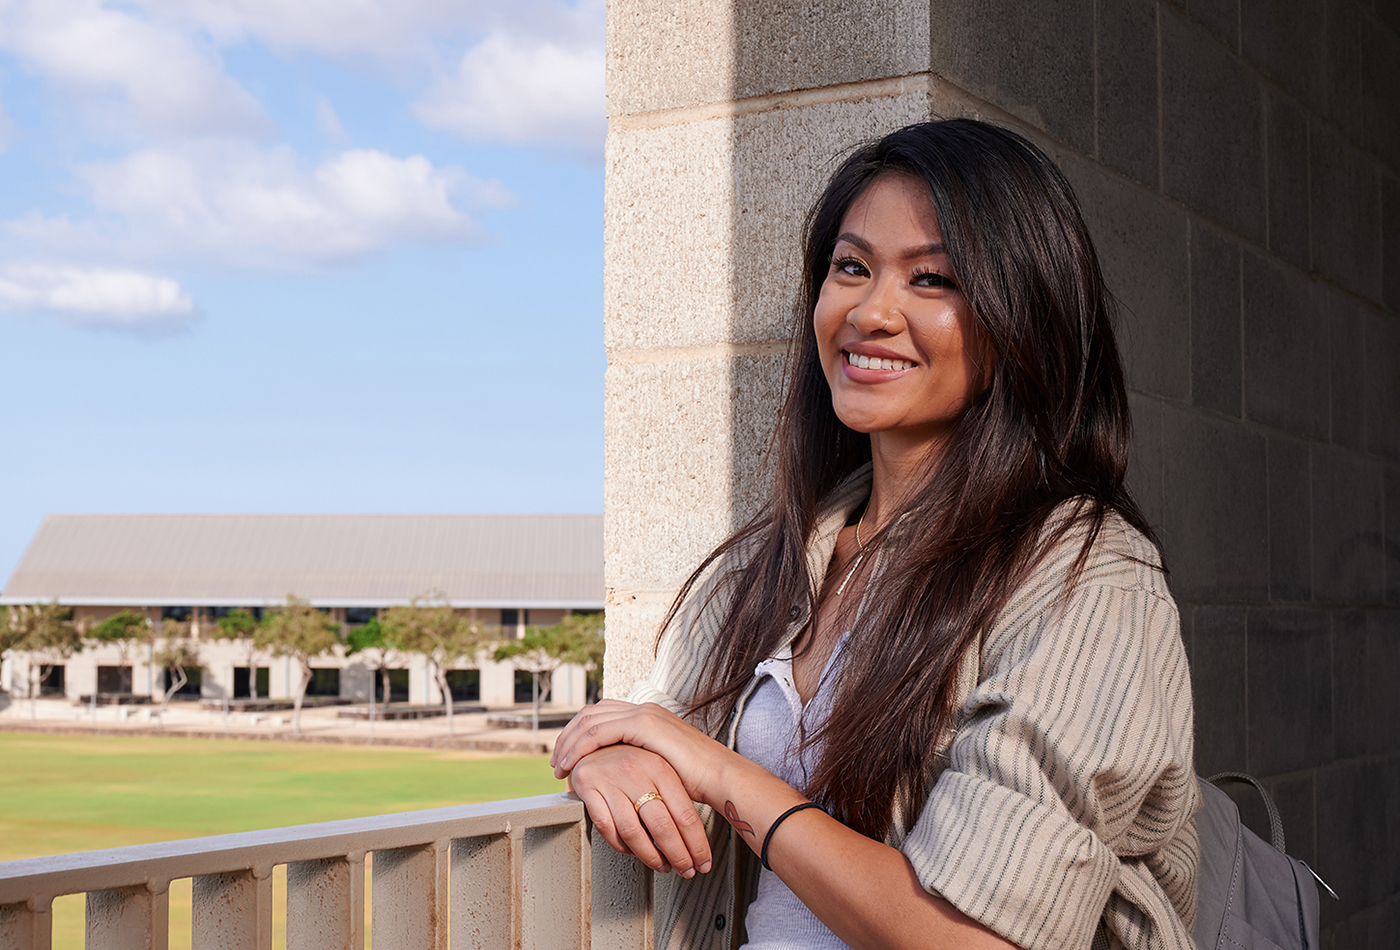 A student smiling by the railing of the second level of the Health Sciences building.